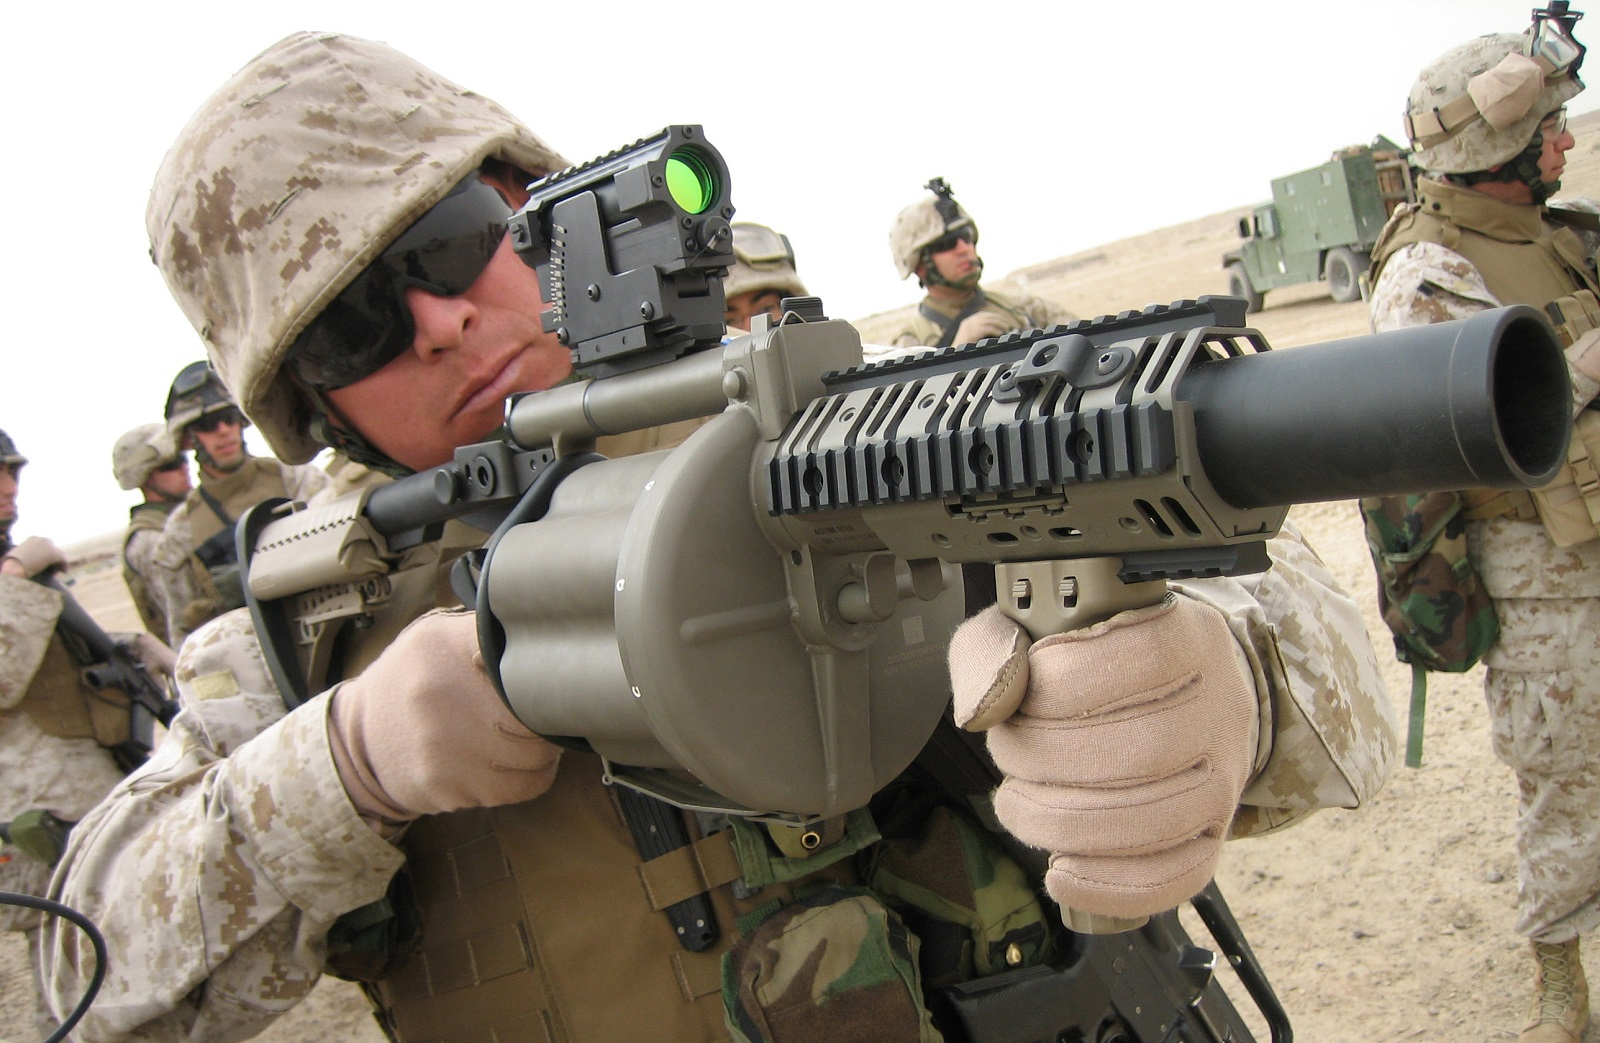 Bringing the Bang: The Navy's SEALs Grenade Launcher Is a Battlefield Terror